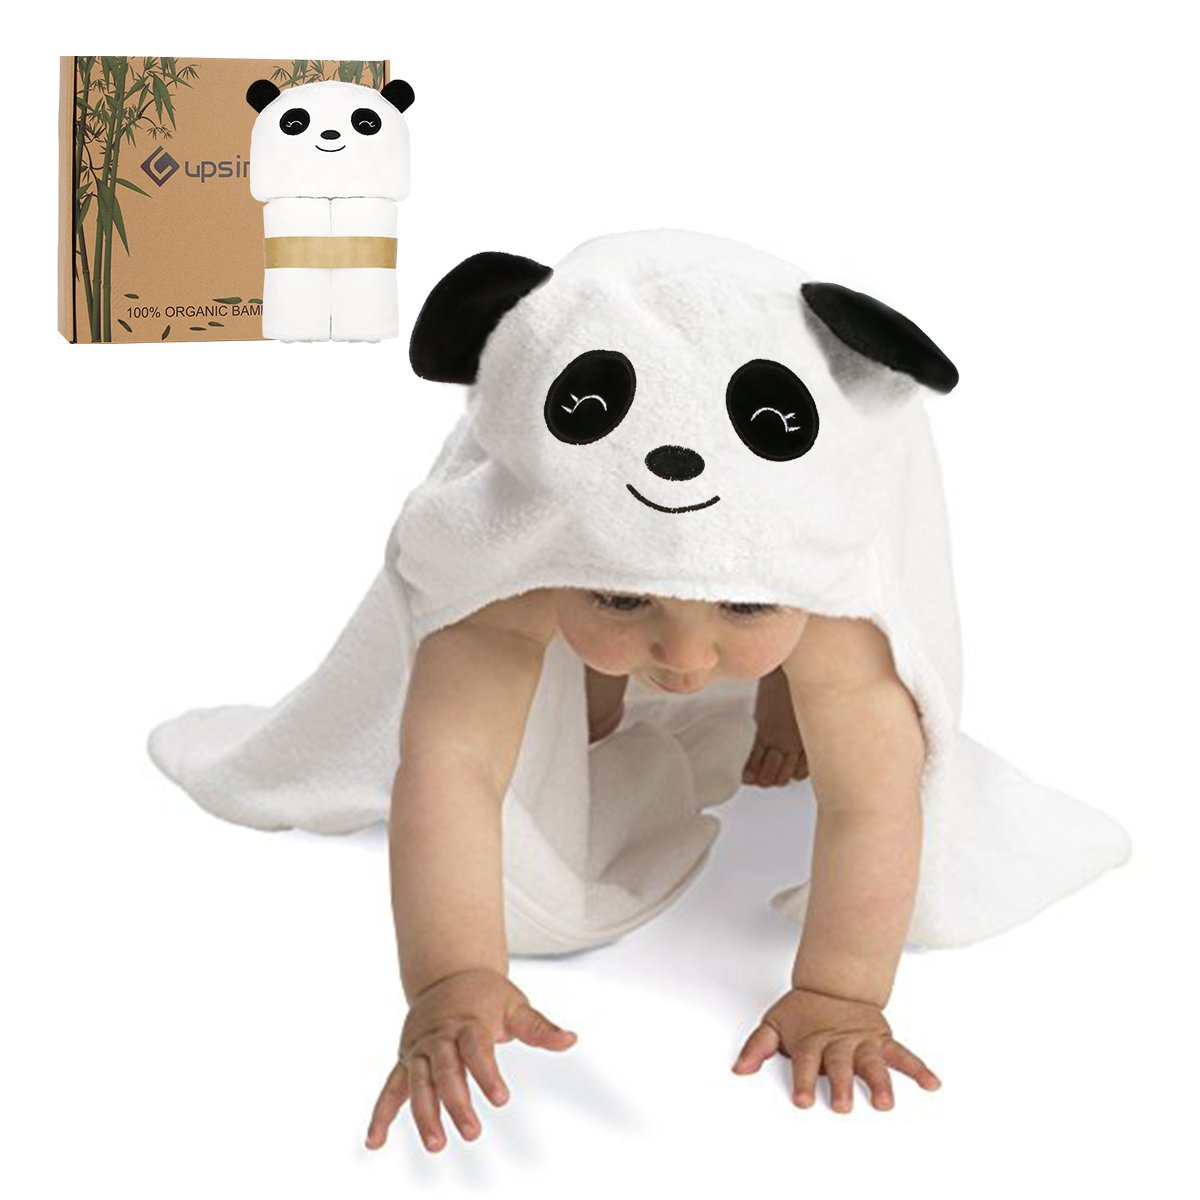 Baby Hooded Towel Upsimples Panda Face Baby Hooded Bath Towel 3838 Inches Ultra Large 500GSM Ultra Soft Organic Bamboo Baby Towel for Baby Infant Toddler Baby Shower Gift Photo Shoot Props